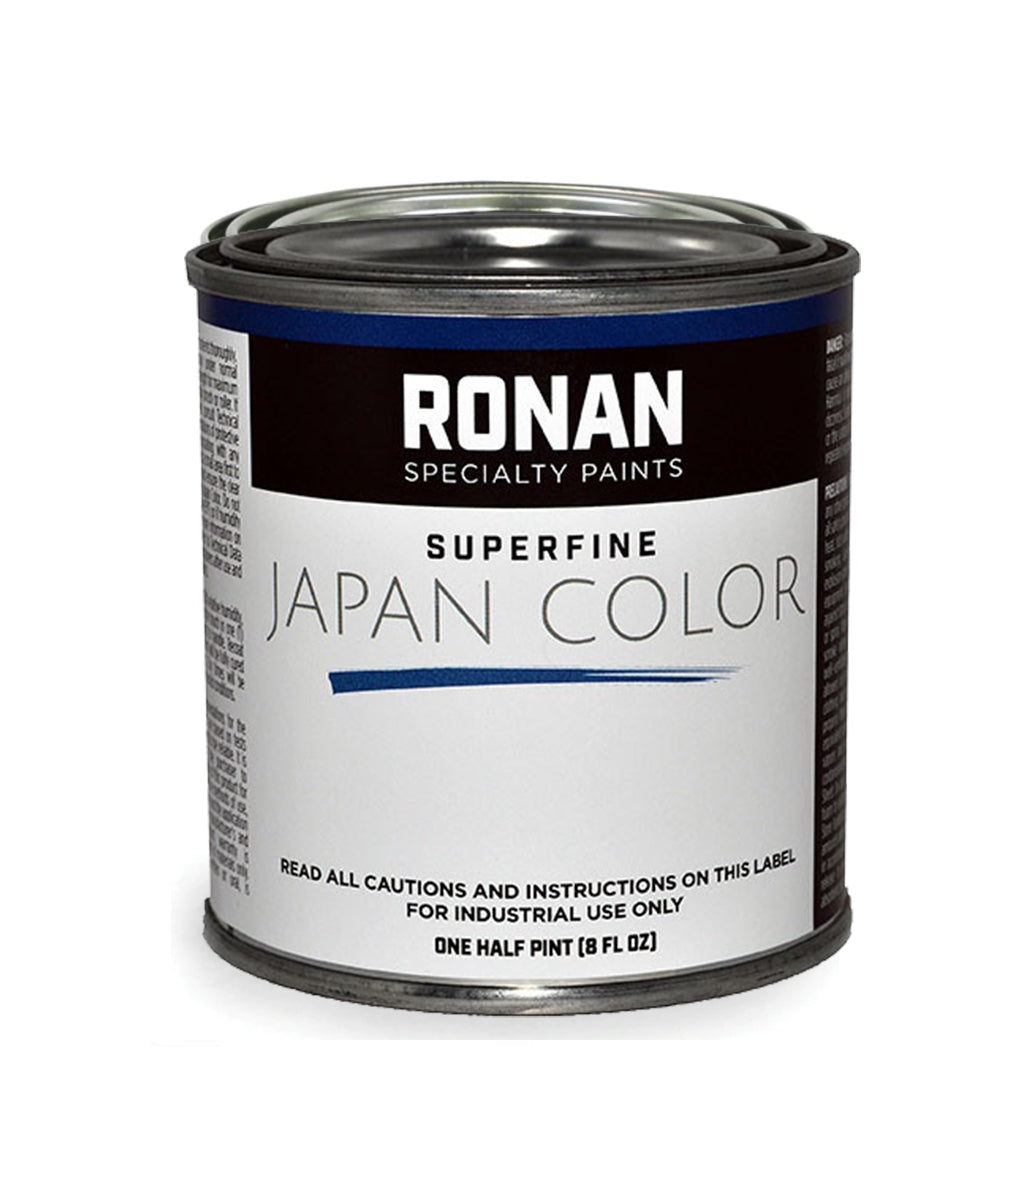 Ronan Japan Colors, available at Clement's Paint in Austin, TX.